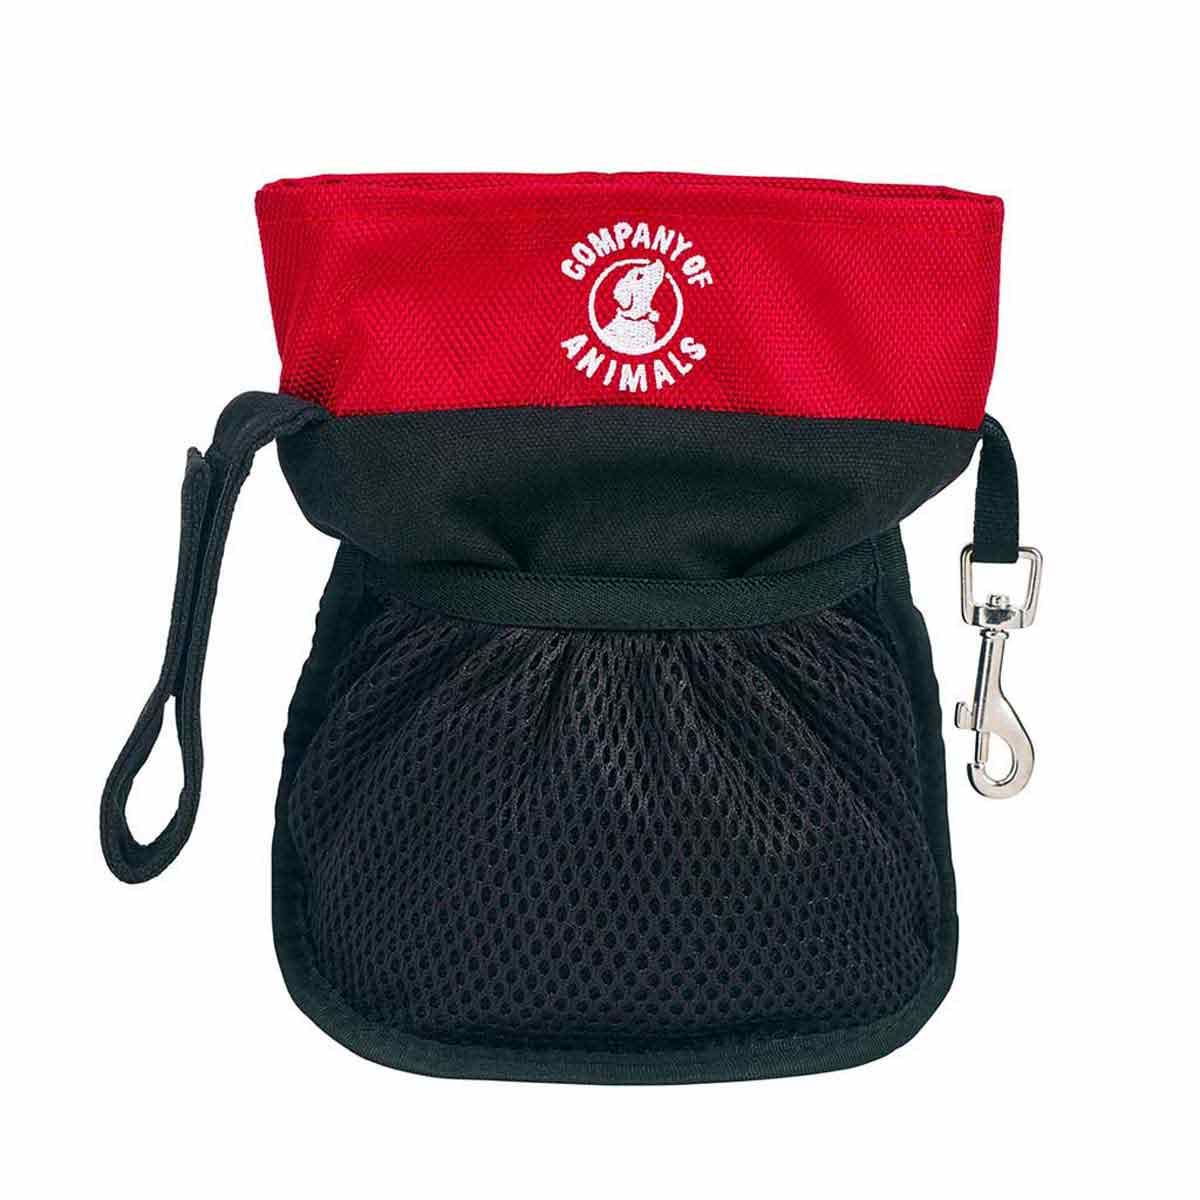 Clix Pro Treat Bag for Dog Training